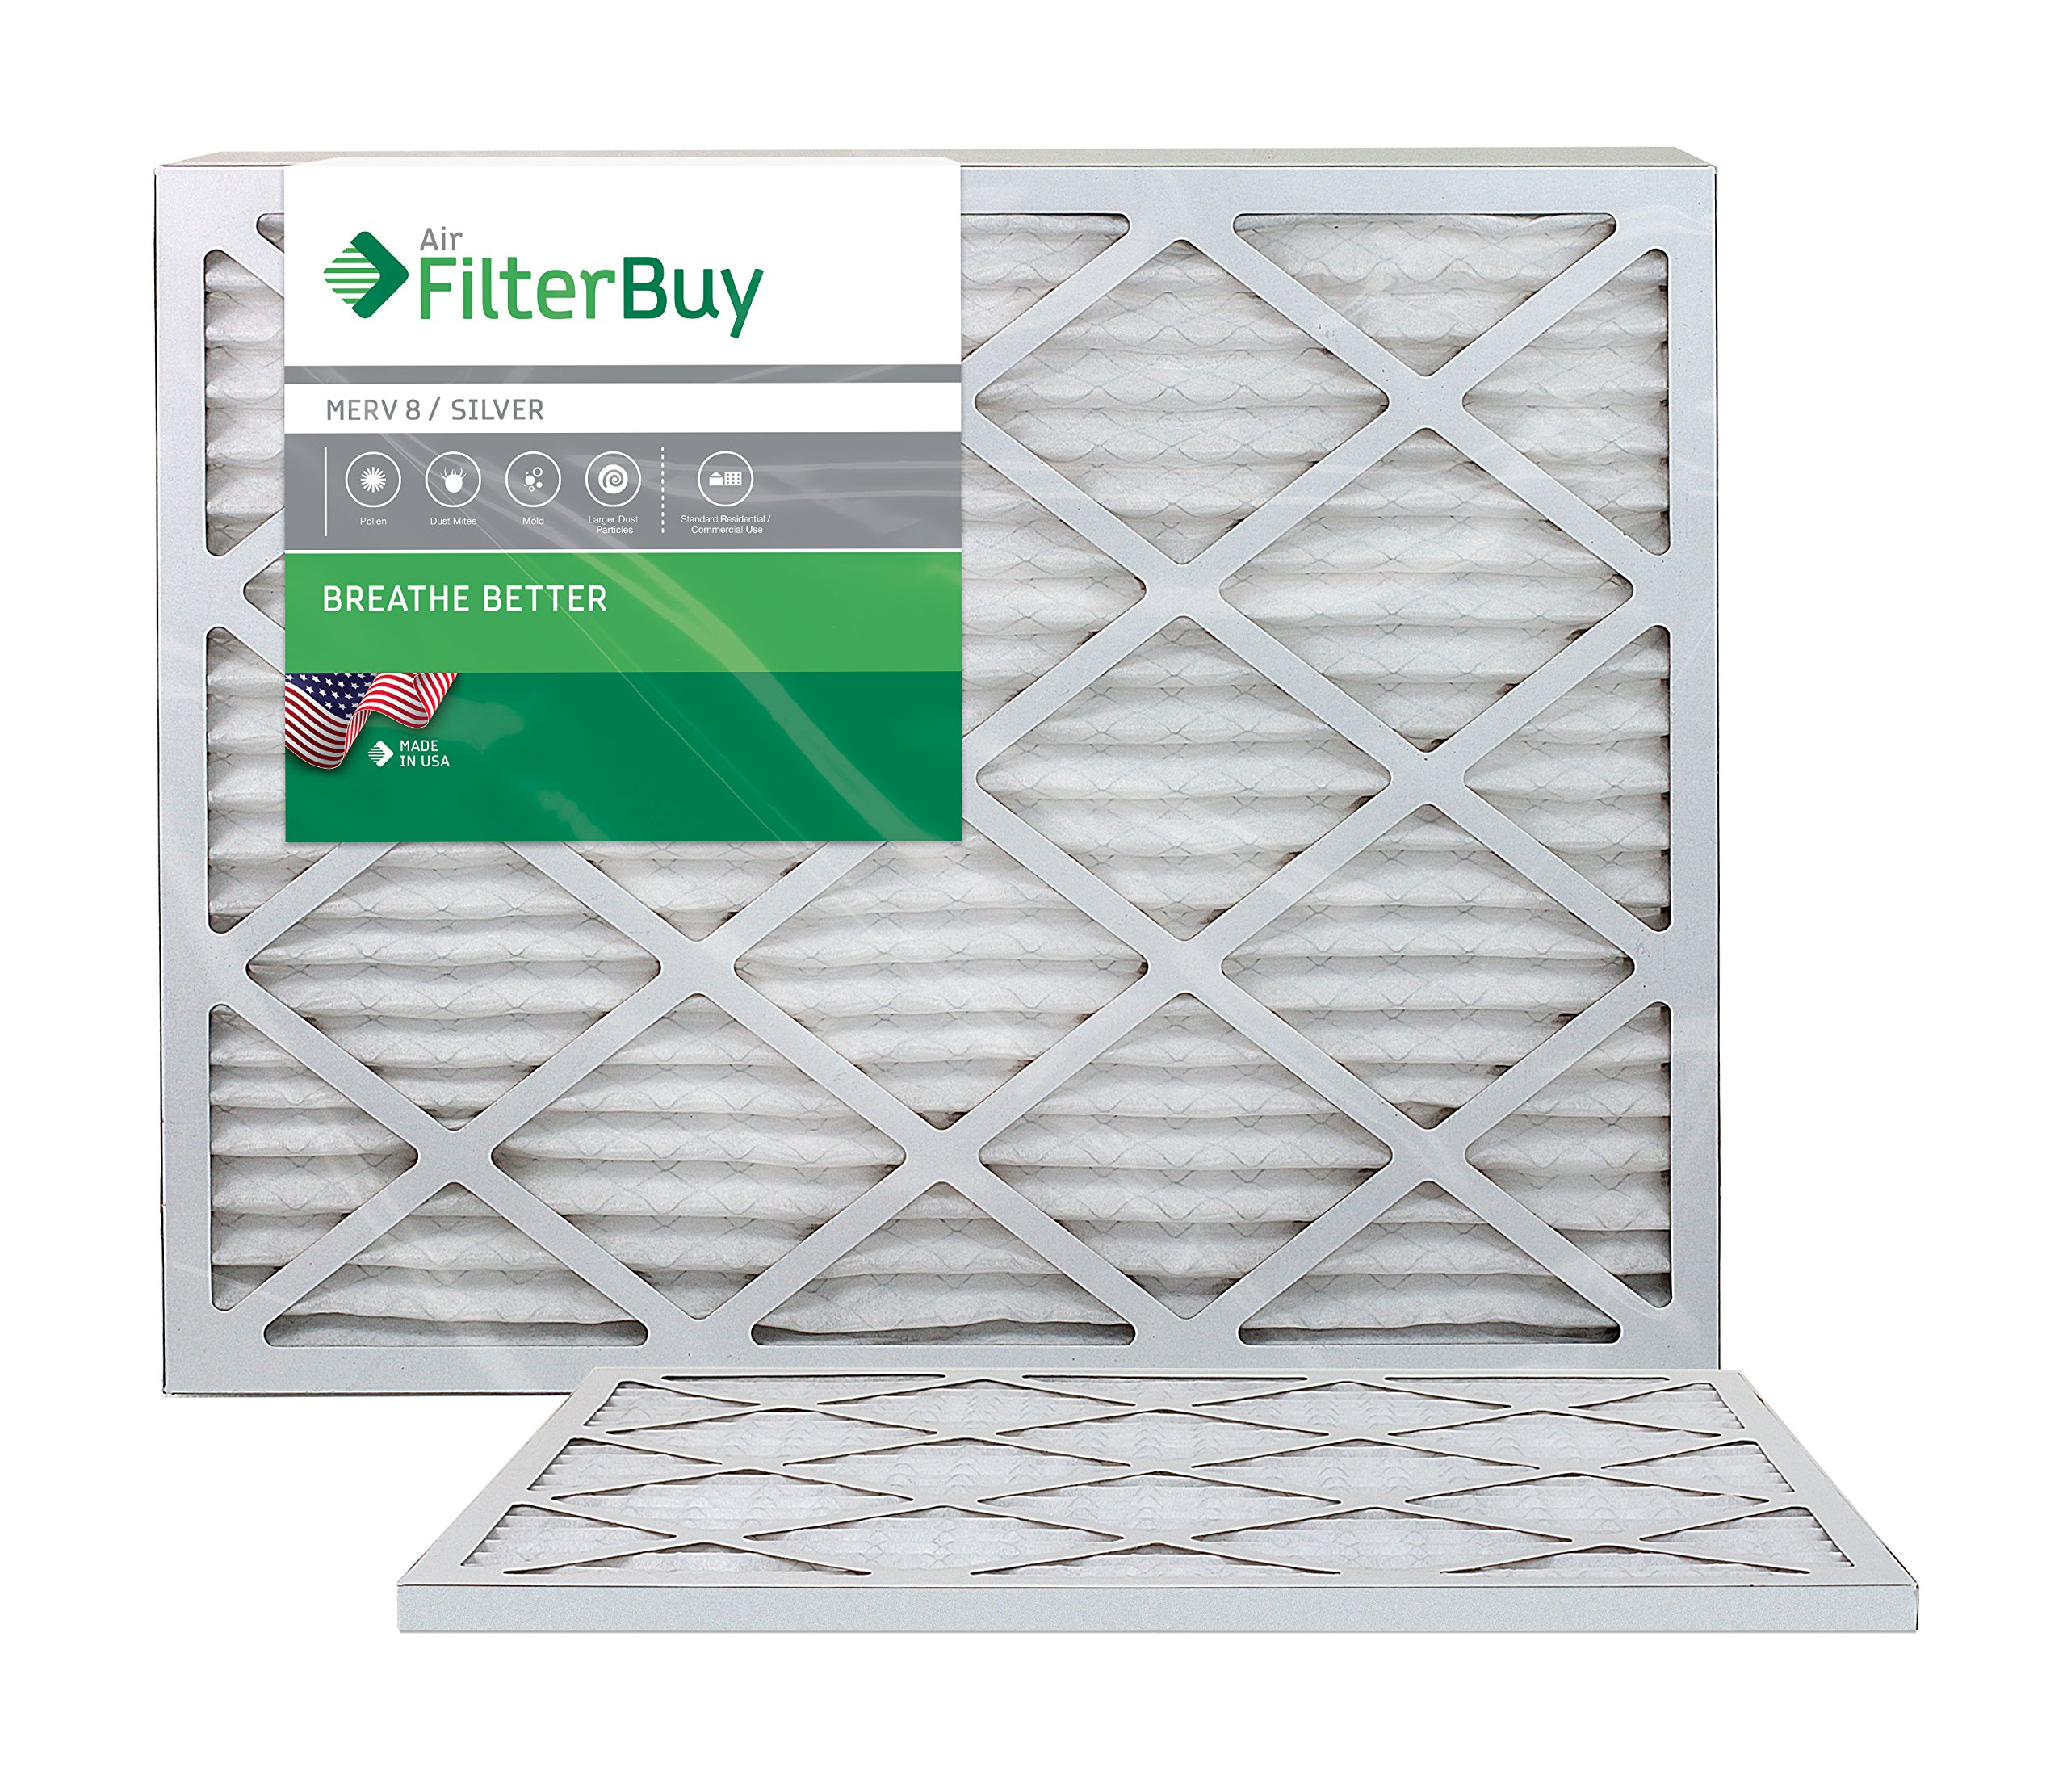 FilterBuy 24x24x1 MERV 8 Pleated AC Furnace Air Filter, (Pack of 2 Filters), 24x24x1 – Silver